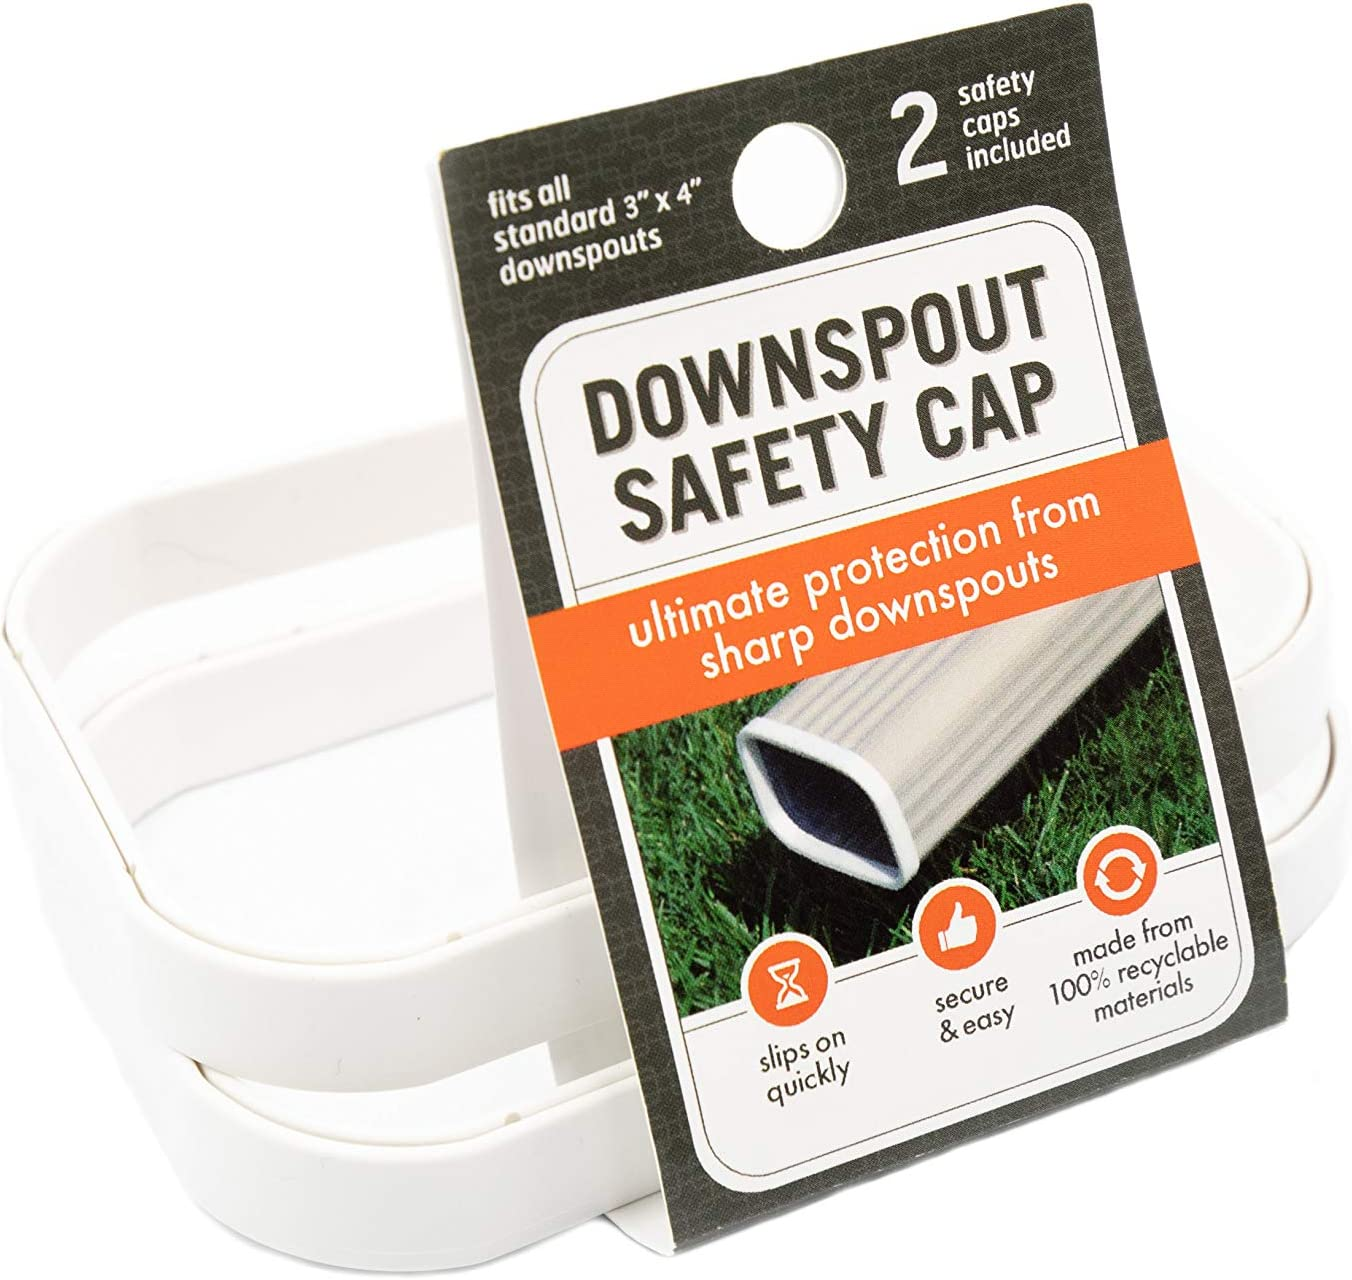 """Downspout Safety Cap   Gutter Downspout Protection for Adults, Kids and Pets   Protect from Gutter Downspout Extension Sharp Edges   3"""" x 4"""" Size Caps   2 Pack   White"""